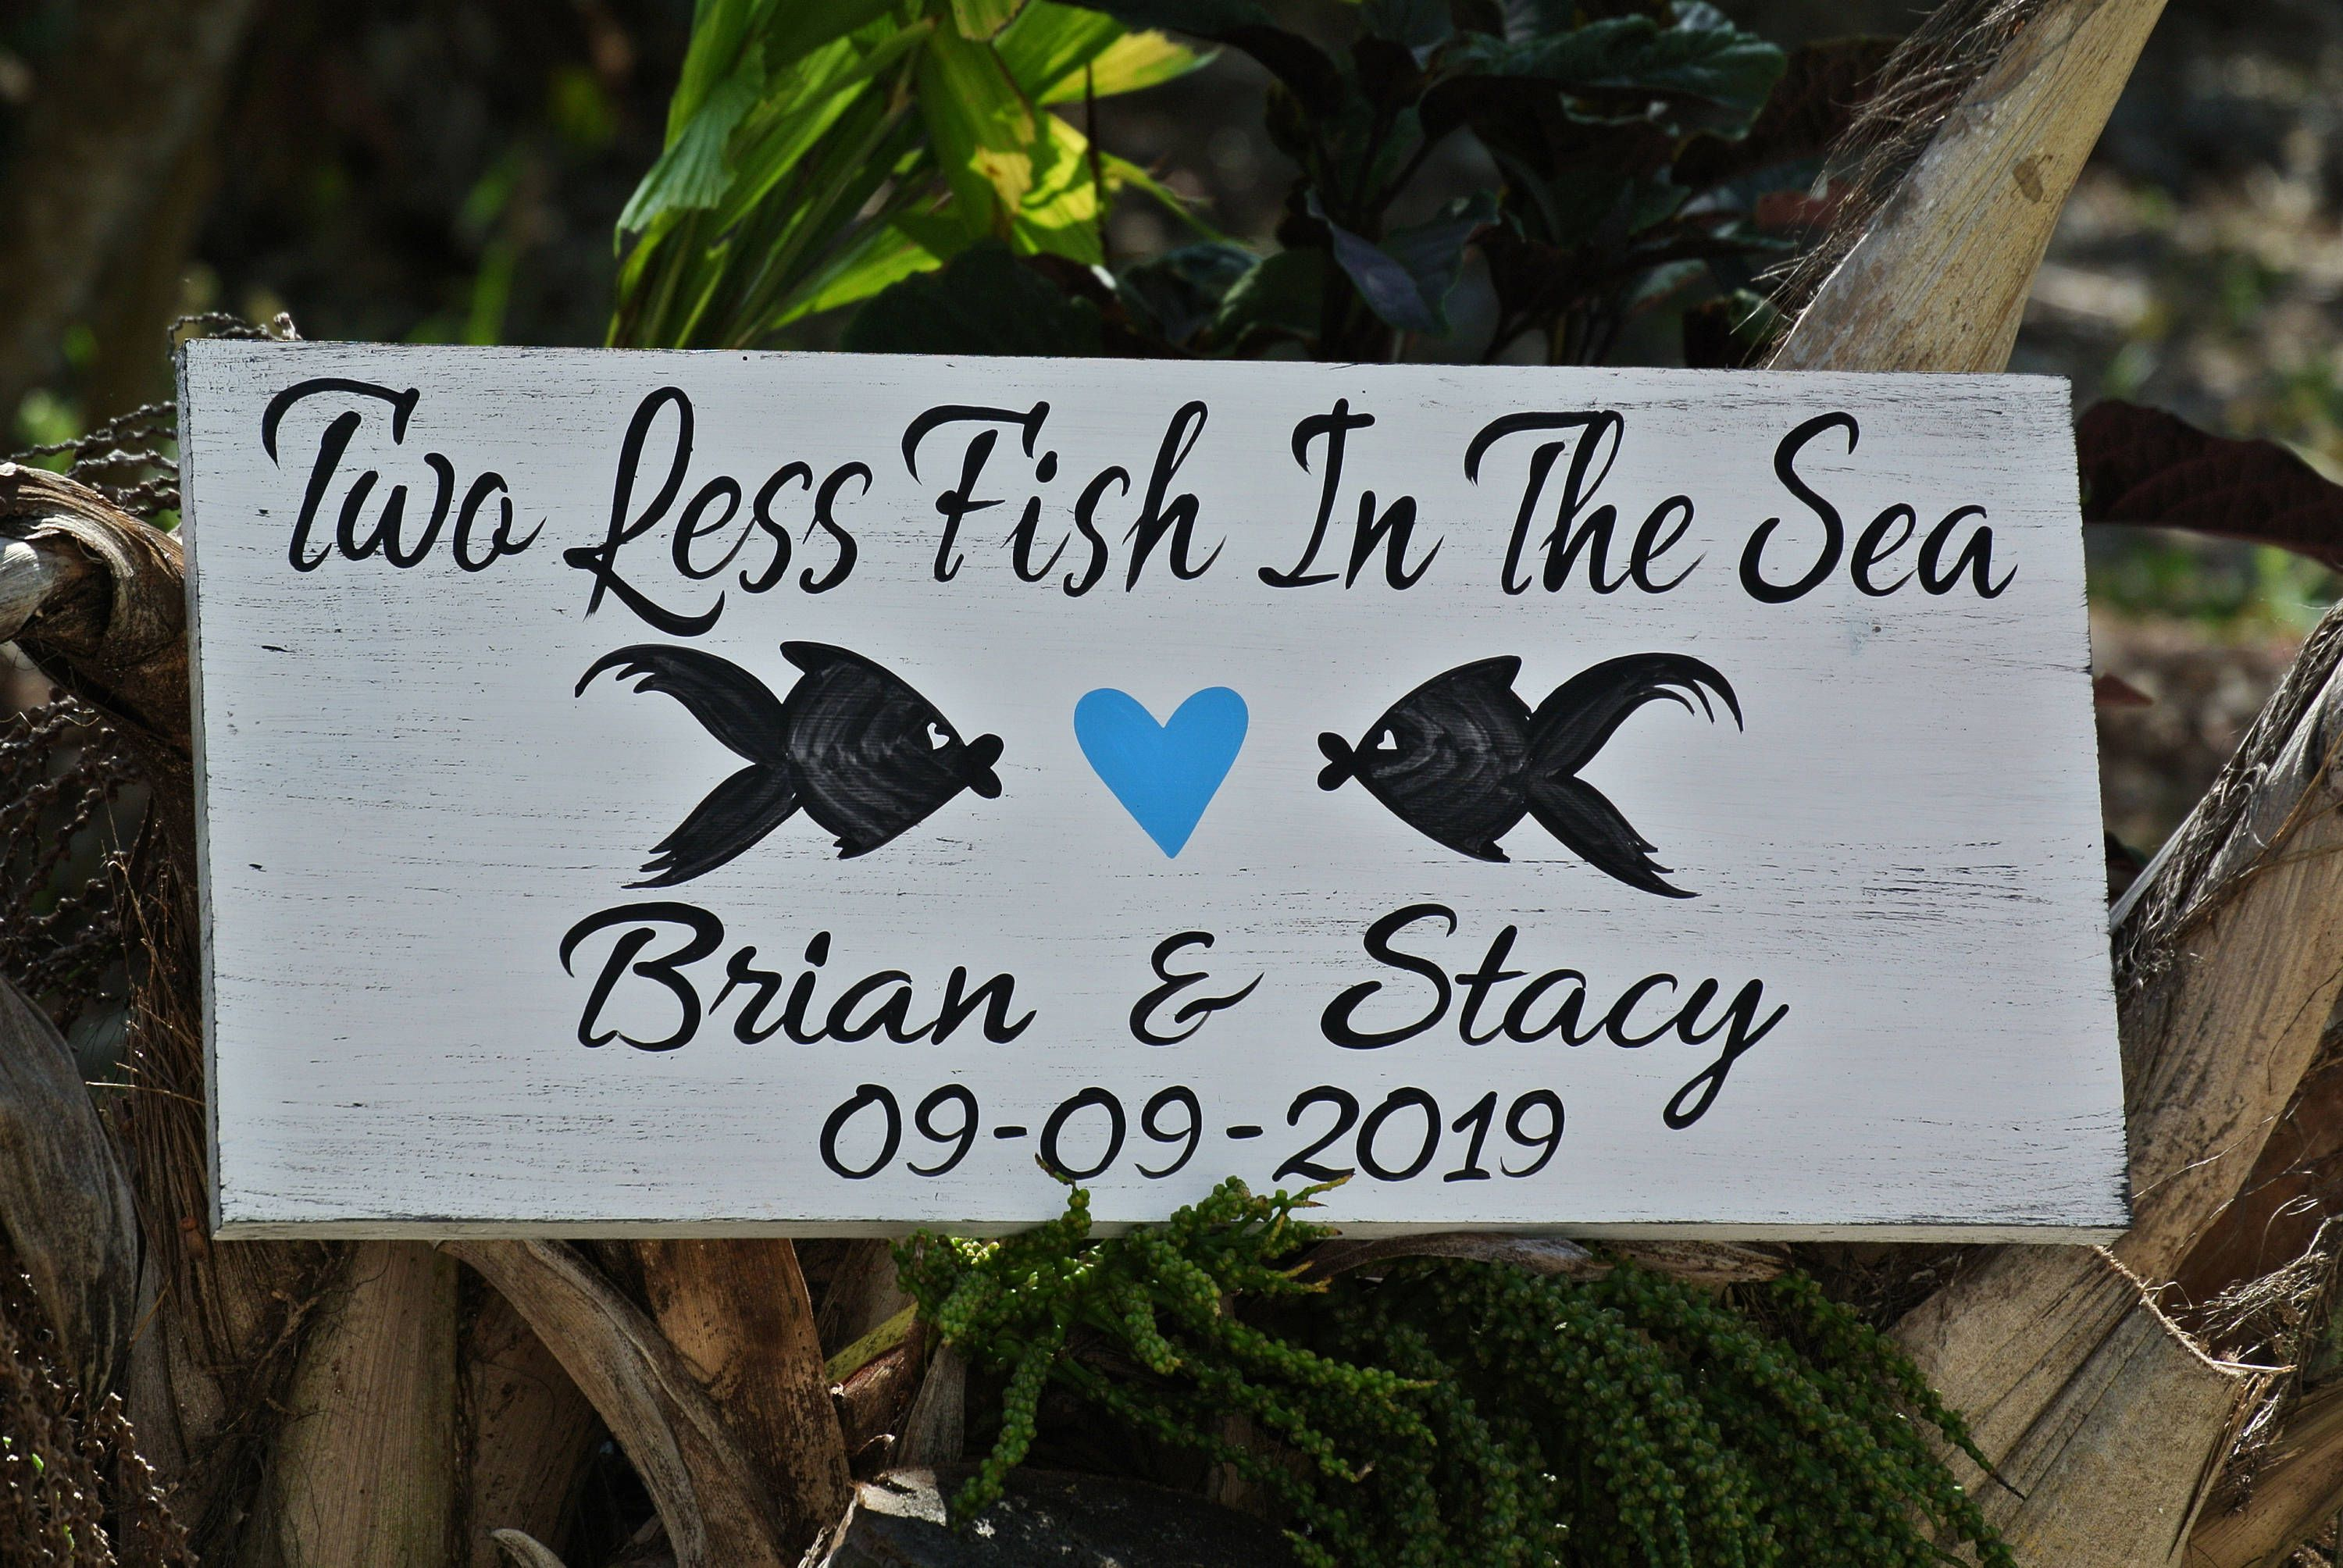 Beach wedding sign two less fish in the sea gift for